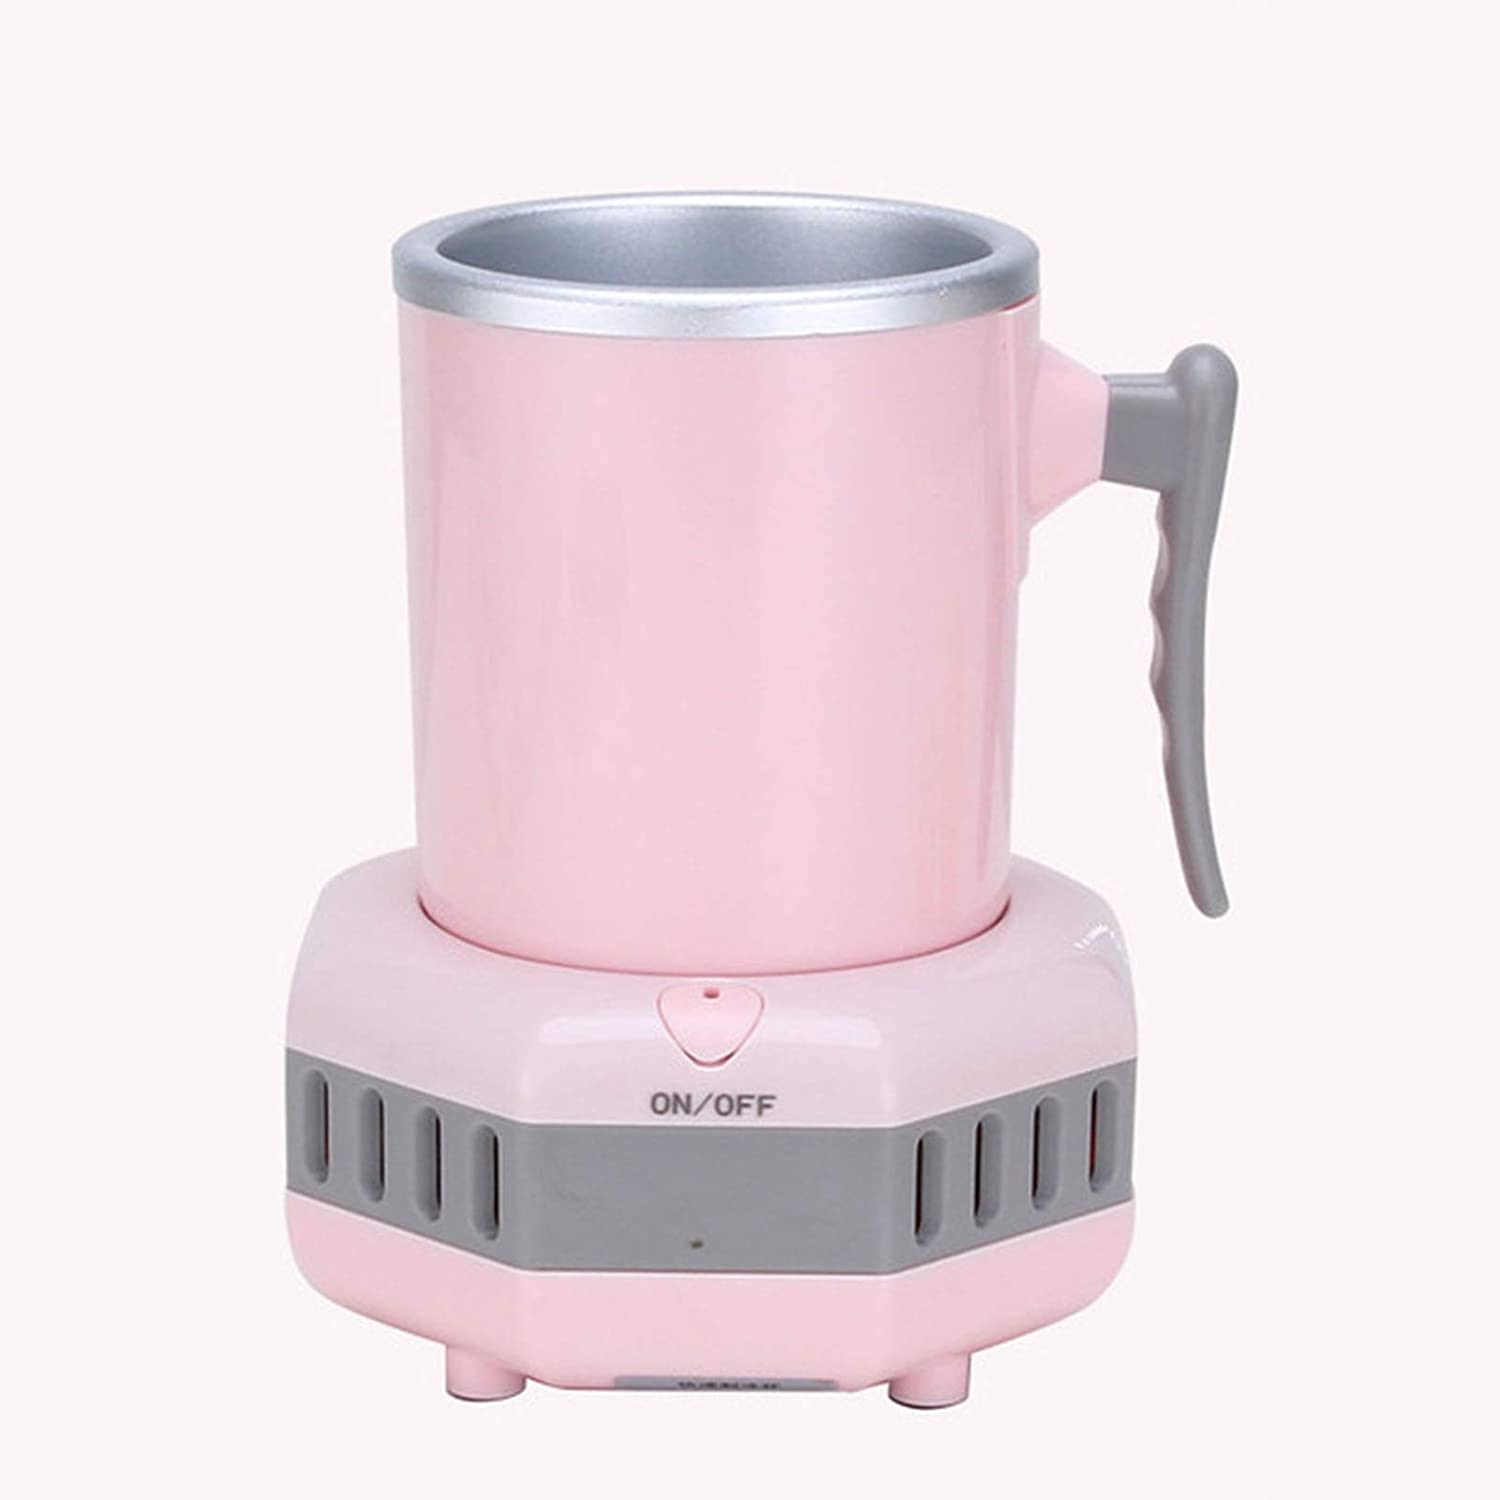 AHRIWINK New Portable Countertop Small Ice Cool Maker Machine Fast Mini Smart Beverage Cooler Cup Quick Cool Making Car Ice Machine Home Camp Party for Cola Wine Beer Drinks,Pink